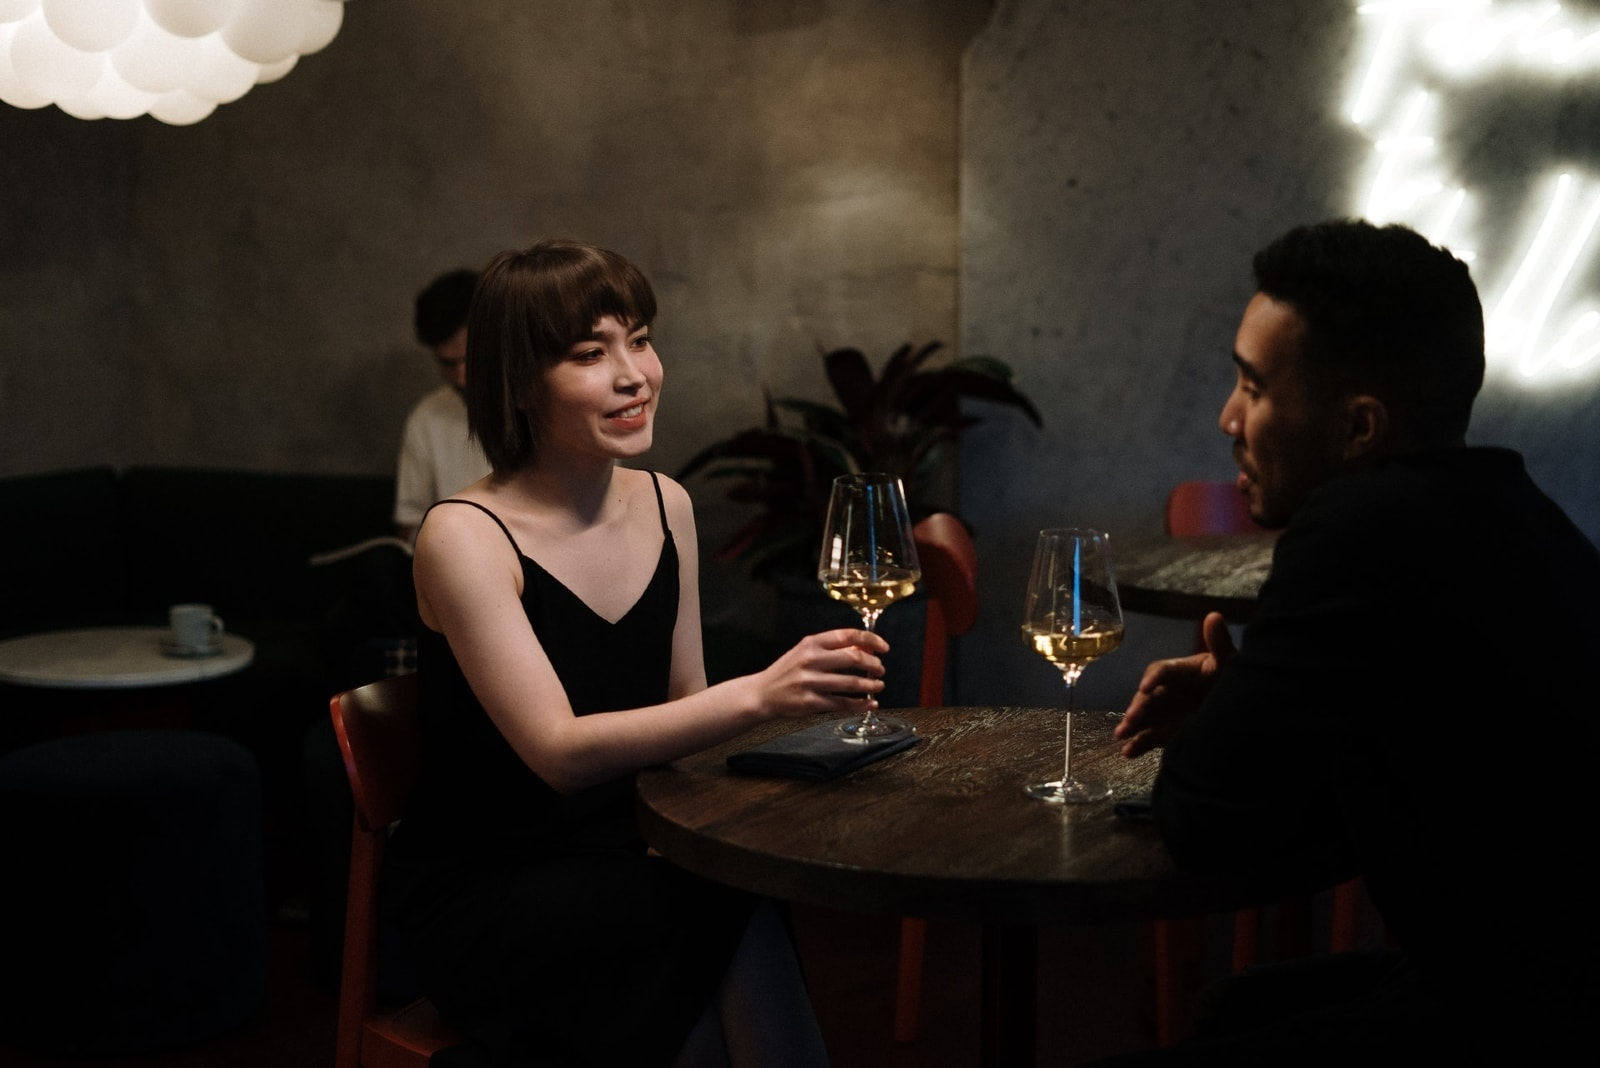 man and woman drinking wine while sitting at table